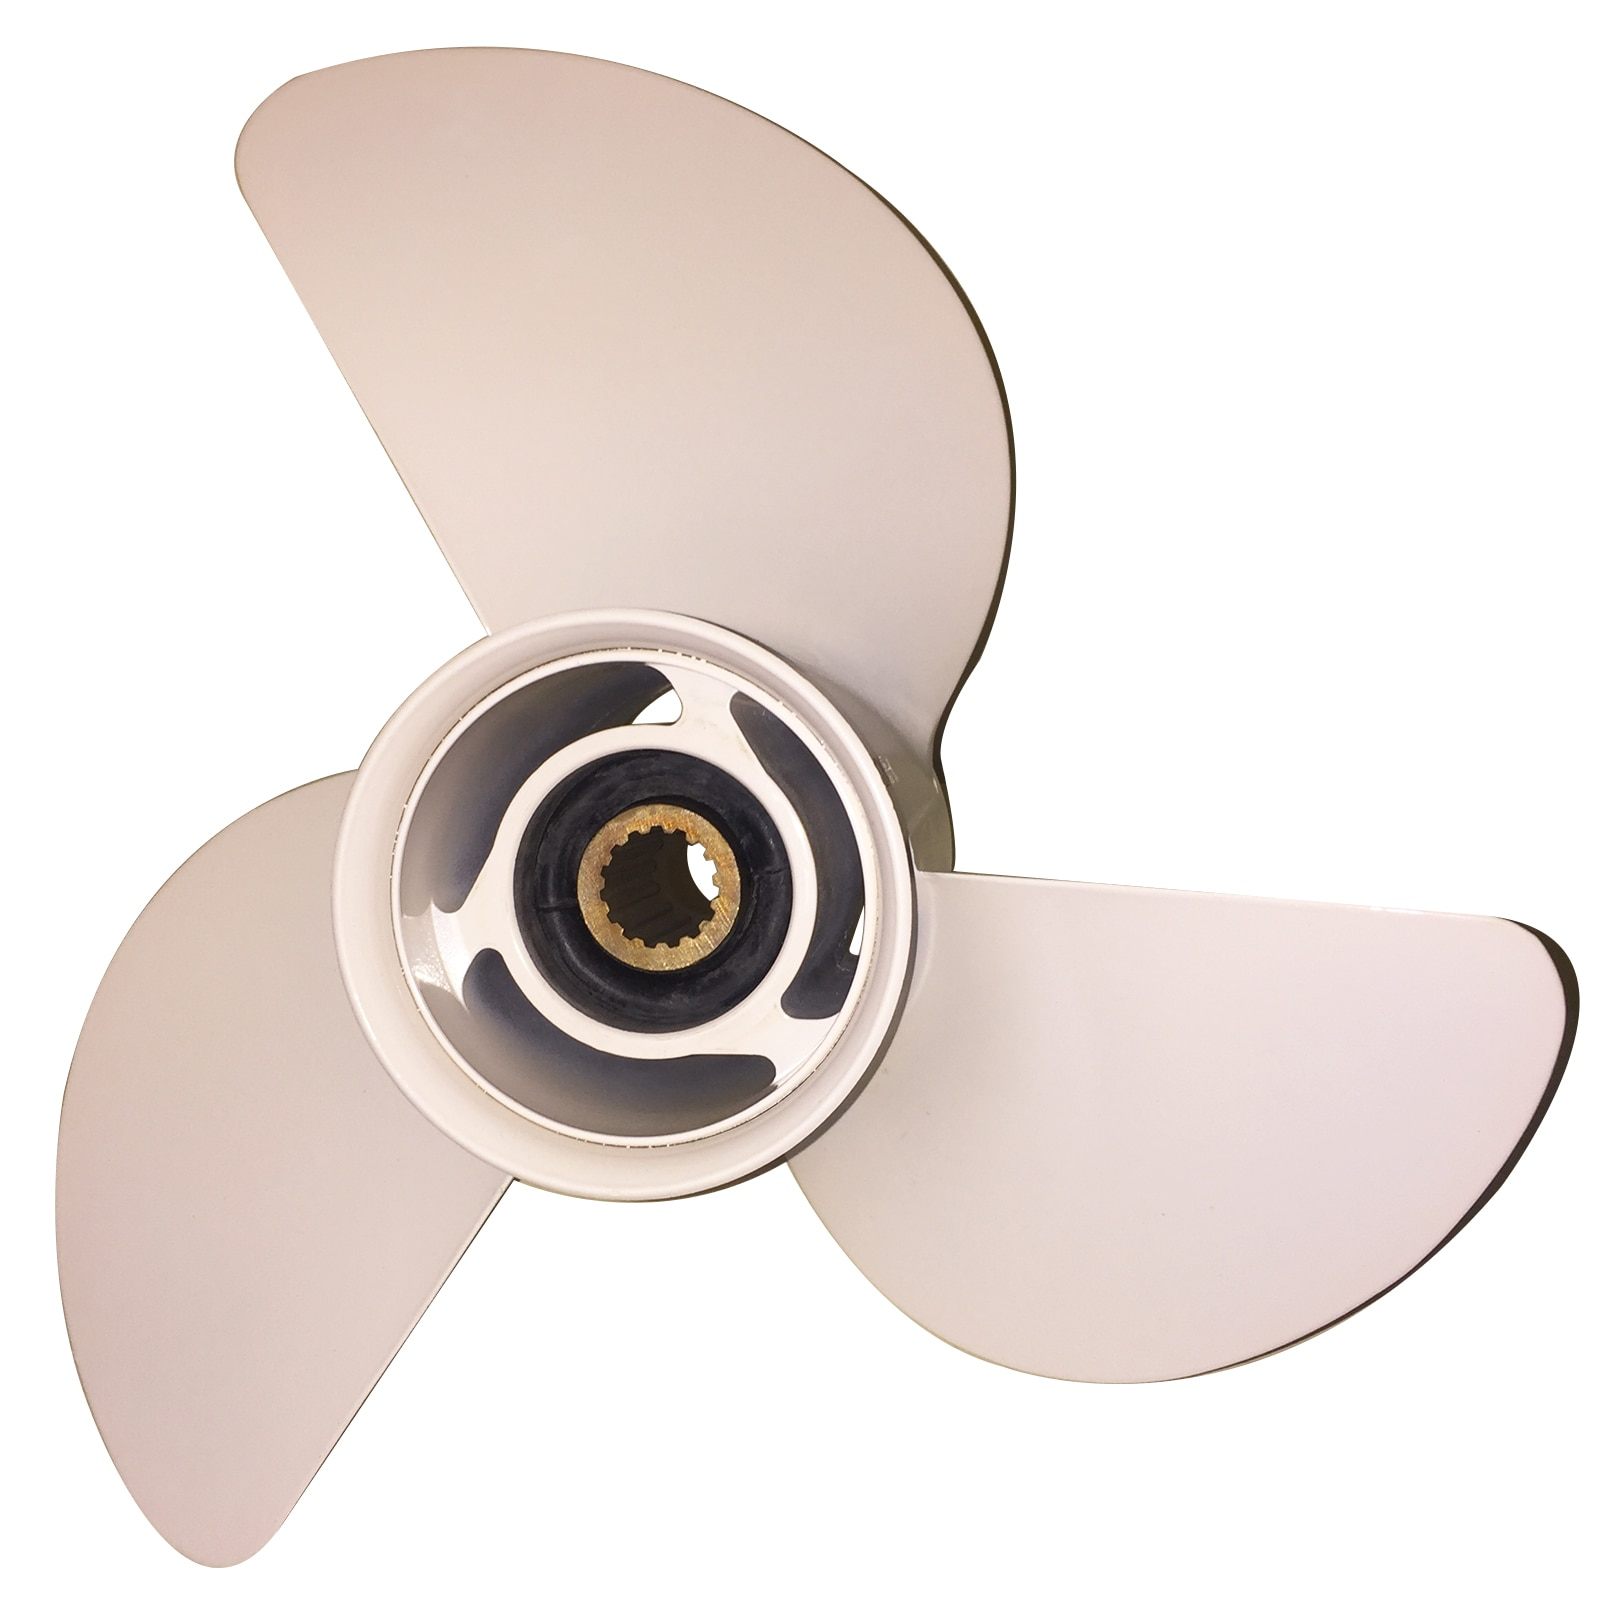 Boat Propeller 13 1/2x14 for Yamaha 60HP-115HP 3 Blades Aluminum Prop 15 Tooth RH OEM NO: 388-45932-60-98 13.5x14 enlarge